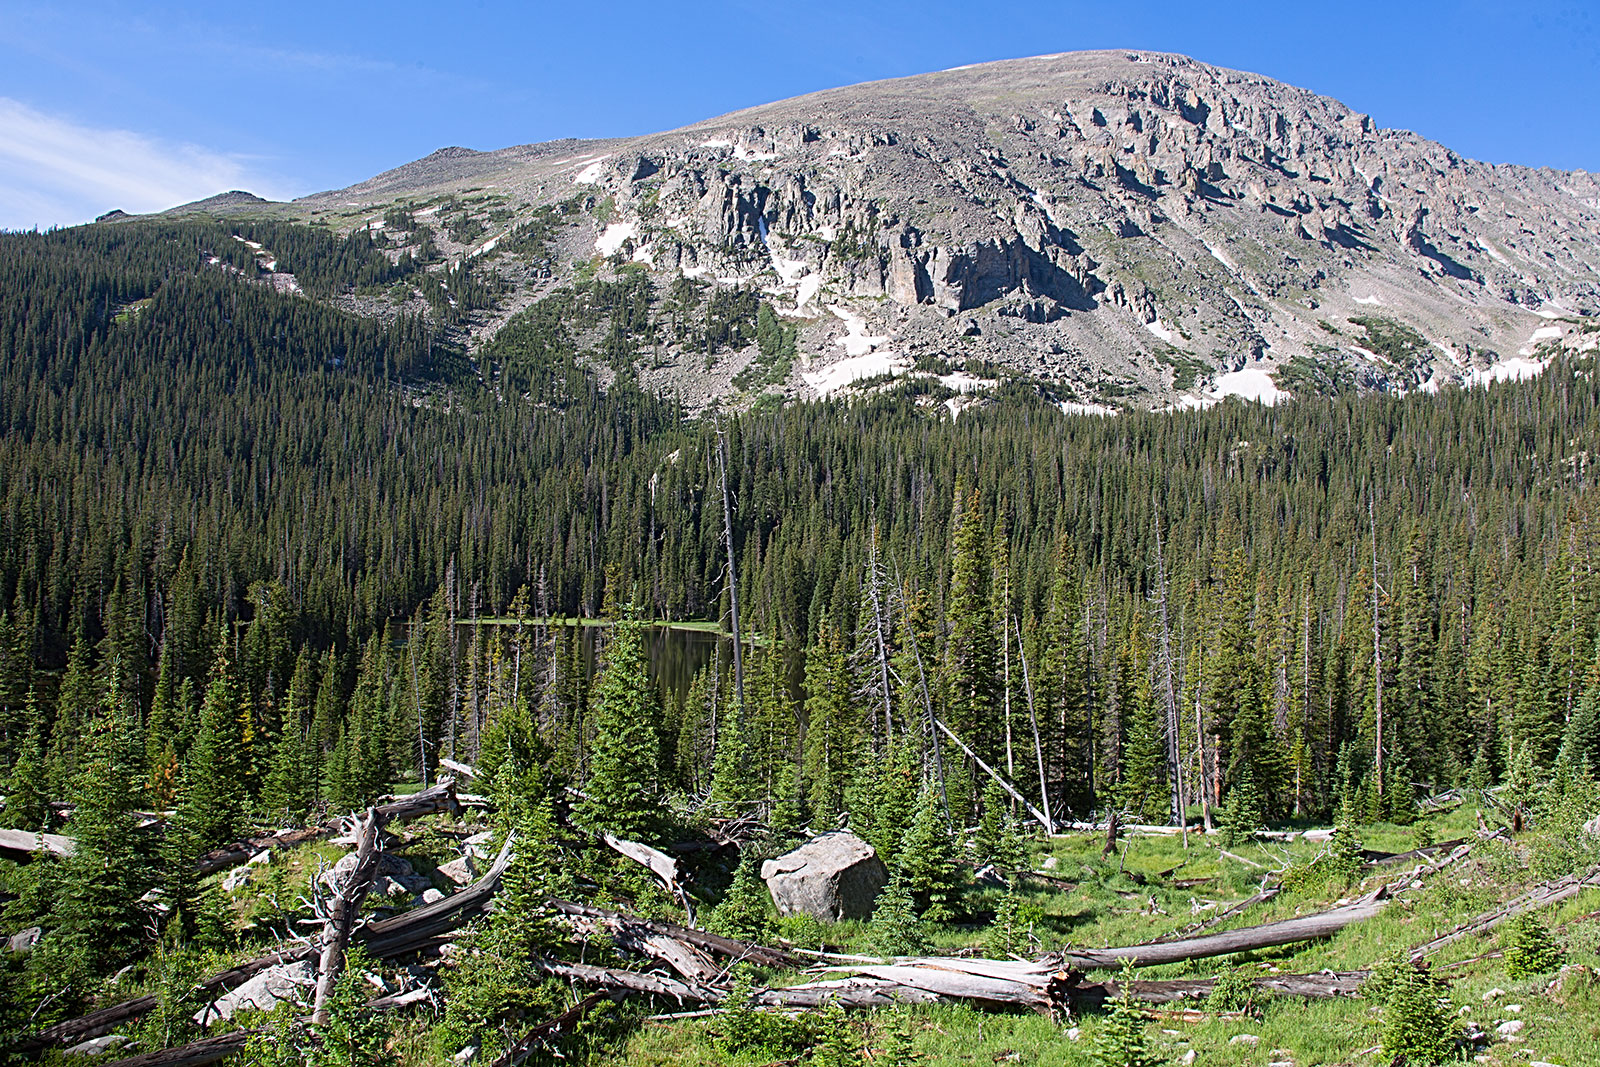 Copeland Mountain, whose smooth brow yields to a very rugged northwest face.